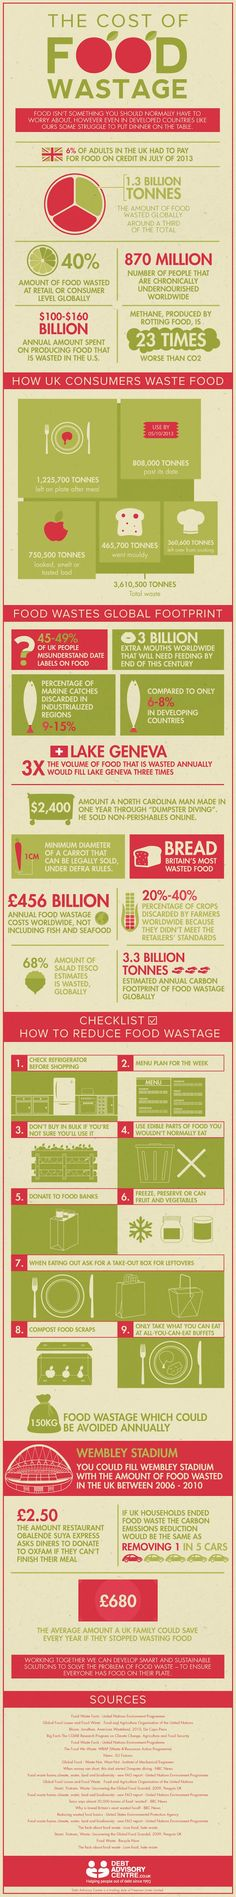 Did you know that the methane from rotting food is 23 times worse than CO2, or that 1.3 billion tonnes of food is wasted around the globe?  Keep these stats in mind next time you're about to scrape your plate into the trash, and consider your options to reduce food waste.